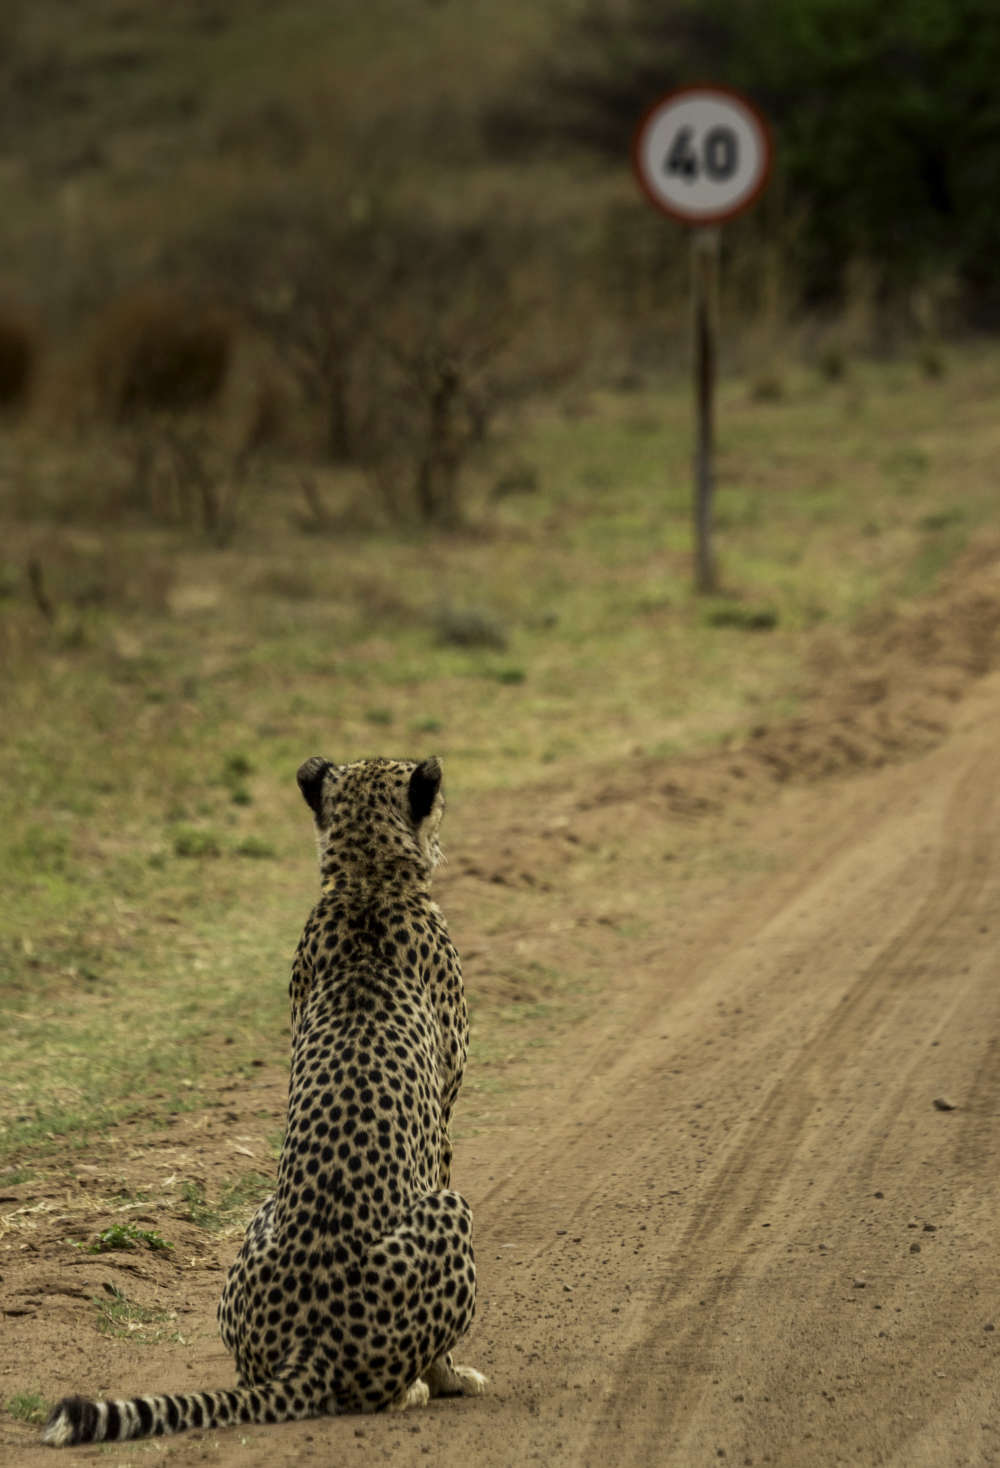 *** EXCLUSIVE - VIDEO AVAILABLE *** HOEDSPRUIT, SOUTH AFRICA: Vaughan Jessnitz wins one of the Highly Commended certificates for his image of a cheetah walking down a main road in a nature reserve in South Africa suddenly noticed a speeding sign, and promptly sat down as if to ponder this speed limit, Hoedspruit, South Africa. The Comedy Wildlife Photo Awards 2016 have come to an end as the winners for this year?s competition are revealed. This year?s contest featured over 2,200 hilarious entries from around the world, with each of the contenders combining exquisite photography skills and perfect comedy timing. The awards ceremony took place at the Underdog Gallery in London on November 9, with winners collecting trophies in five separate categories and an additional 10 highly commended photographers each receiving a certificate. PHOTOGRAPH BY Vaughan Jessnitz / Barcroft Images London-T:+44 207 033 1031 E:hello@barcroftmedia.com - New York-T:+1 212 796 2458 E:hello@barcroftusa.com - New Delhi-T:+91 11 4053 2429 E:hello@barcroftindia.com www.barcroftimages.com